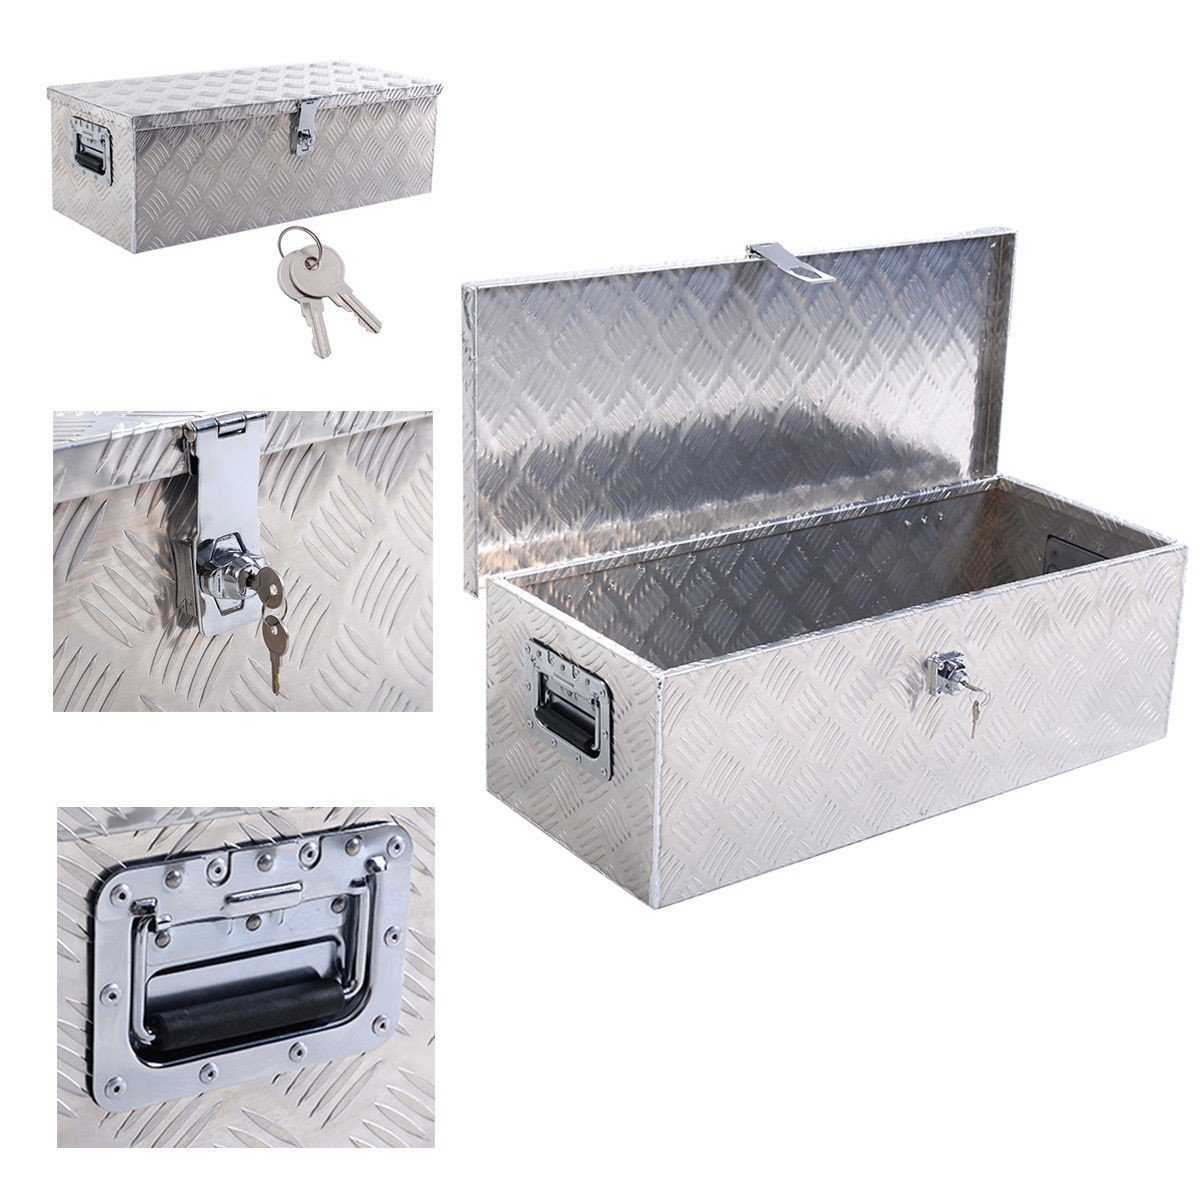 30''L Aluminum Truck Pickup Bed Trailer ATV Tongue Lockable Tool Box W/ Lock - By Choice Products